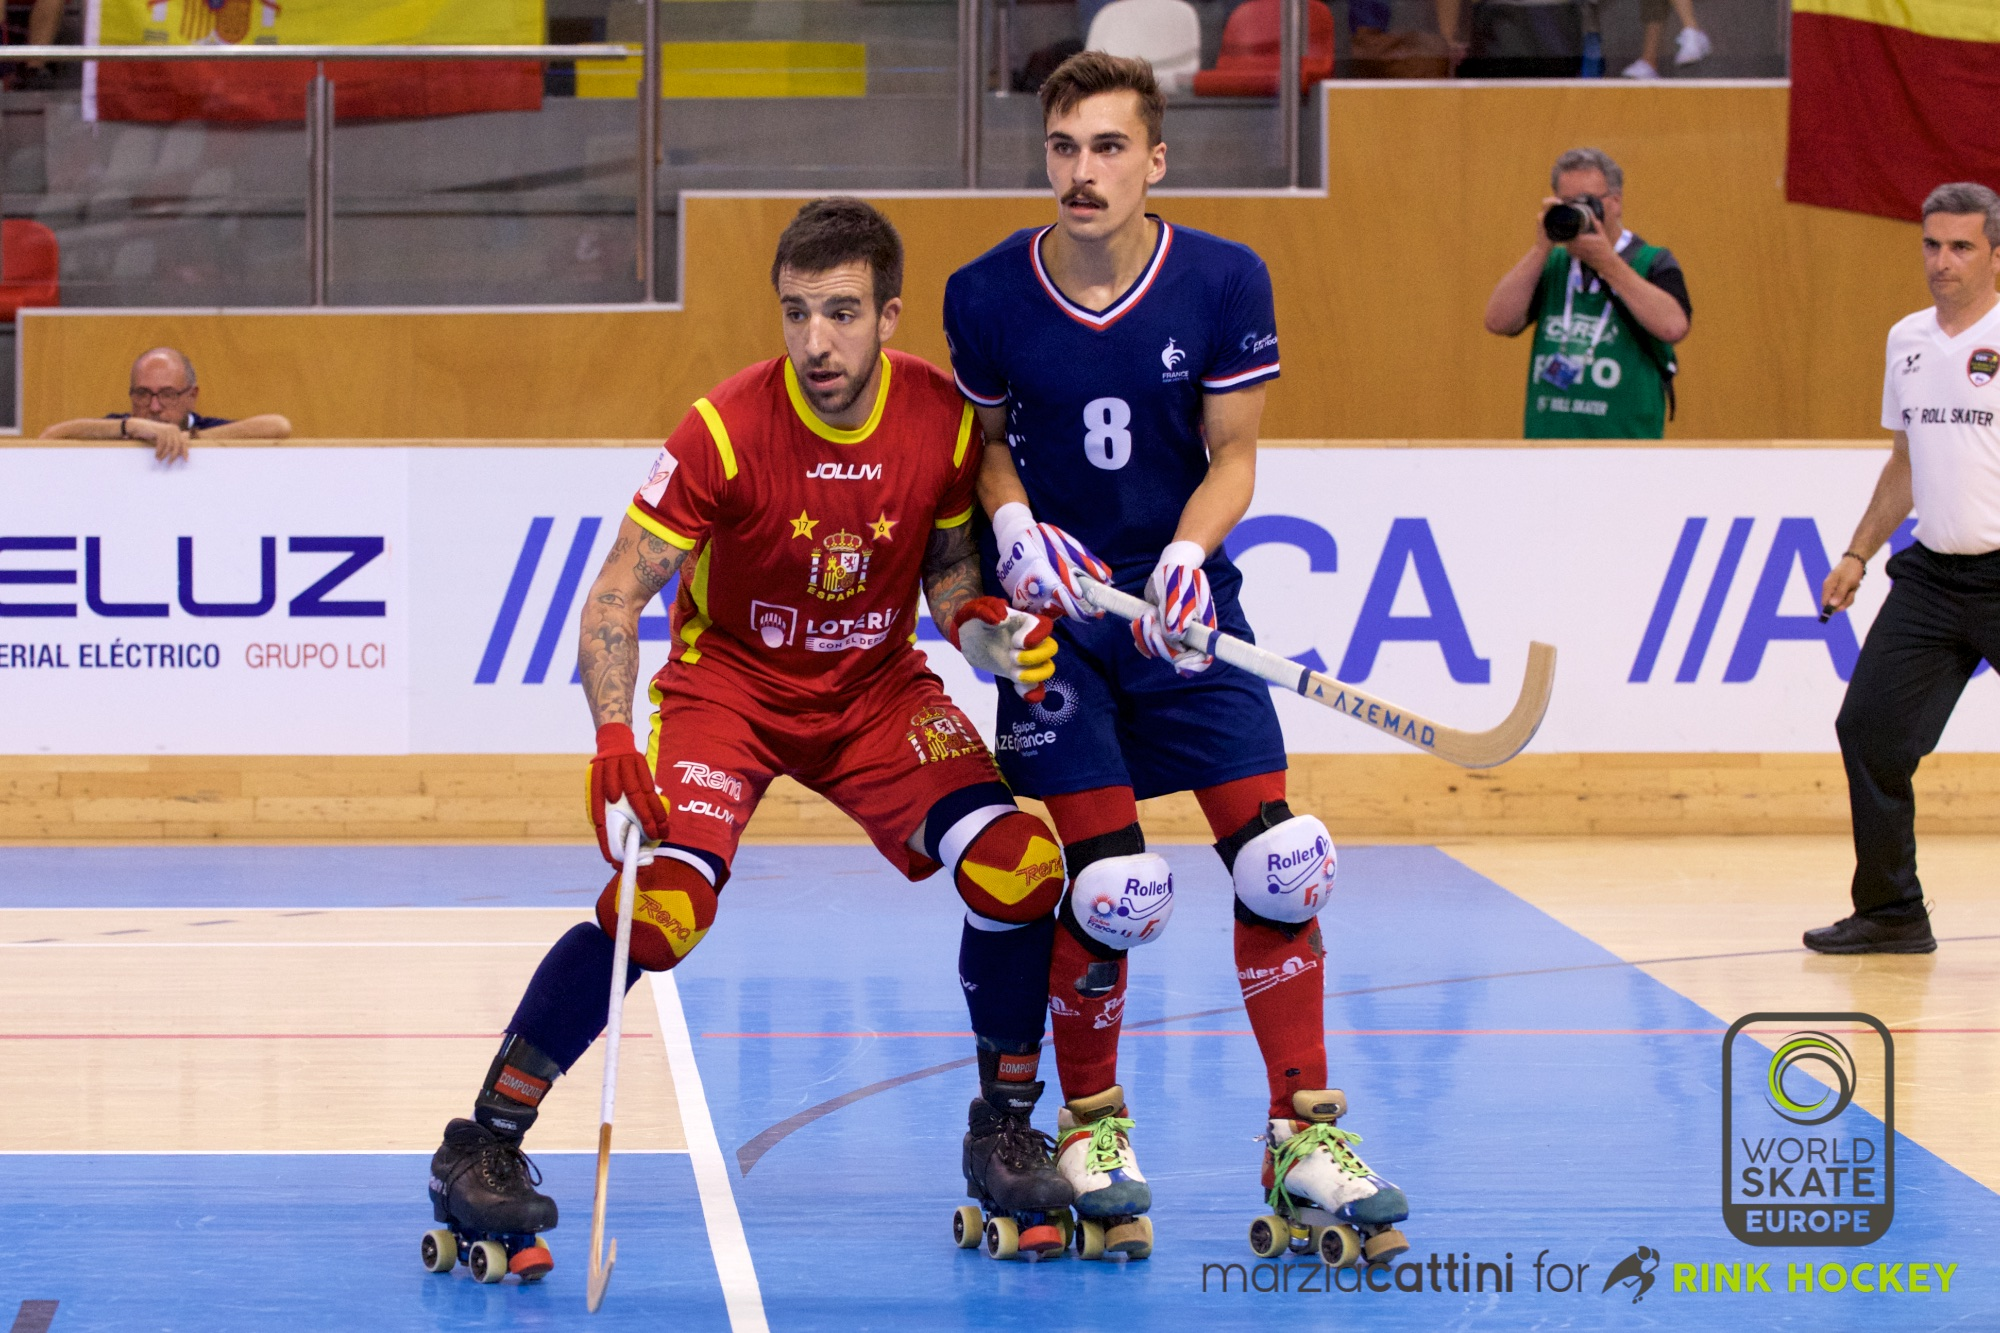 PHOTOS – 21/07/2018 - EUROHOCKEY CORUNA 2018 - Match #34 - Spain x France – Photos by Marzia Cattini